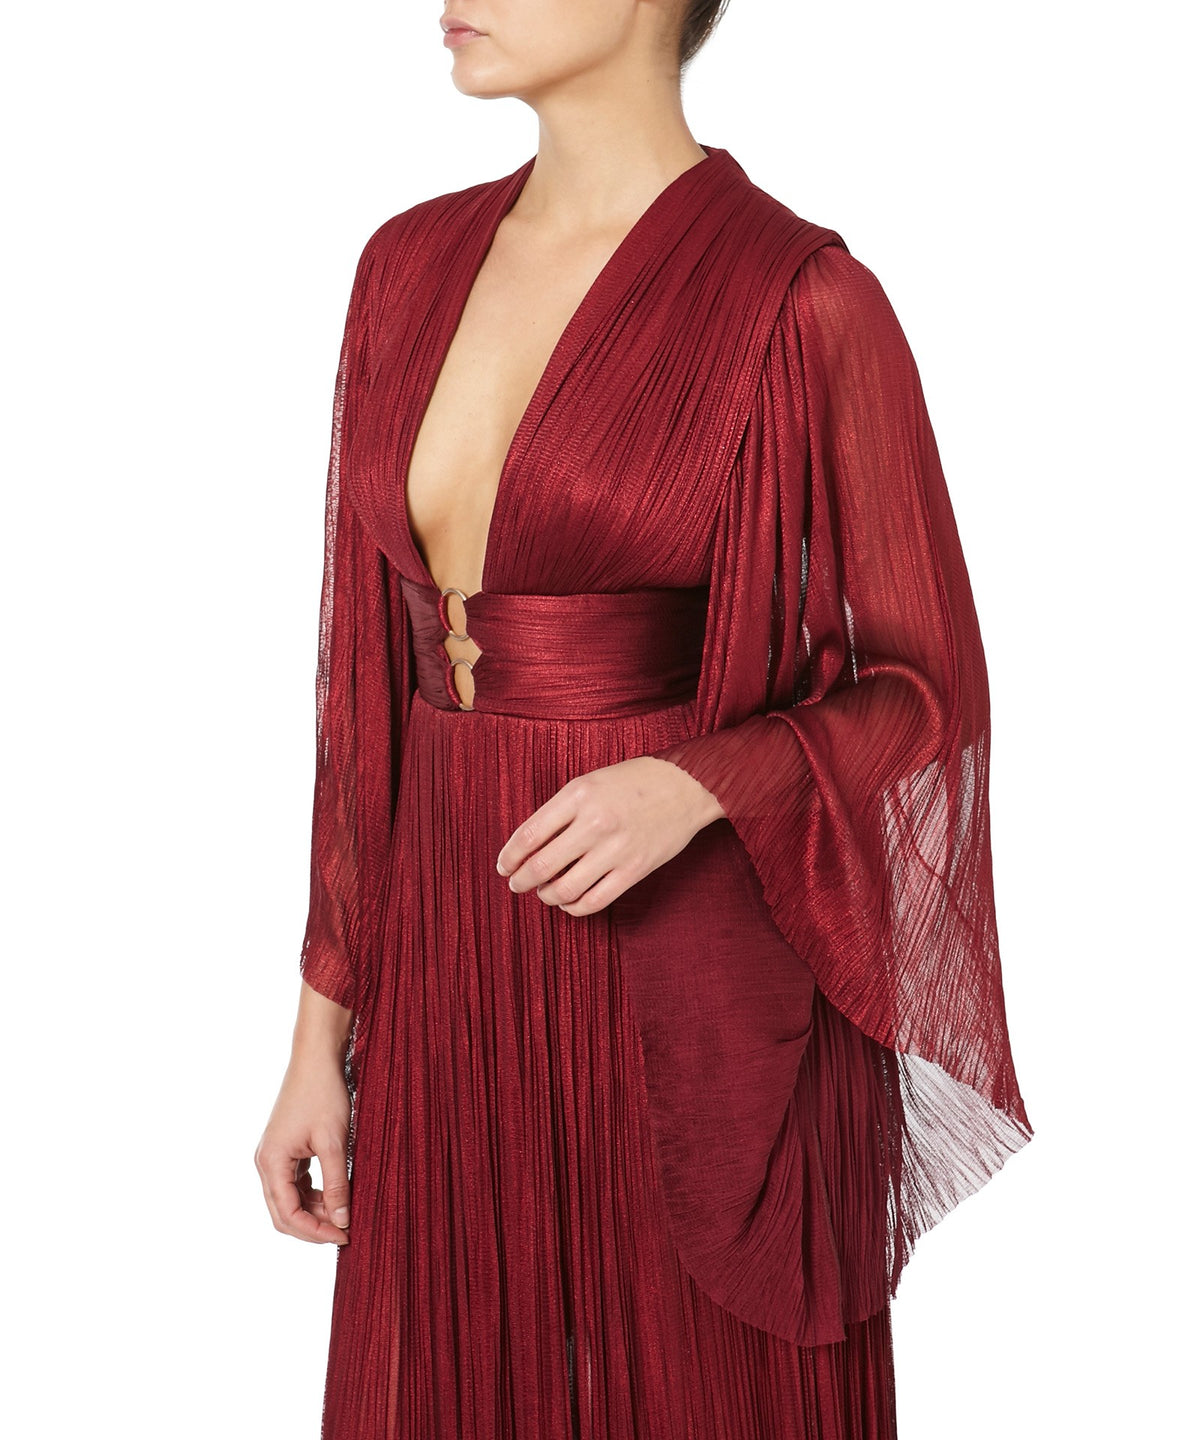 CHARLIZE PLEATED GOWN  -SIDE VIEW- THE BOX BOUTIQUE